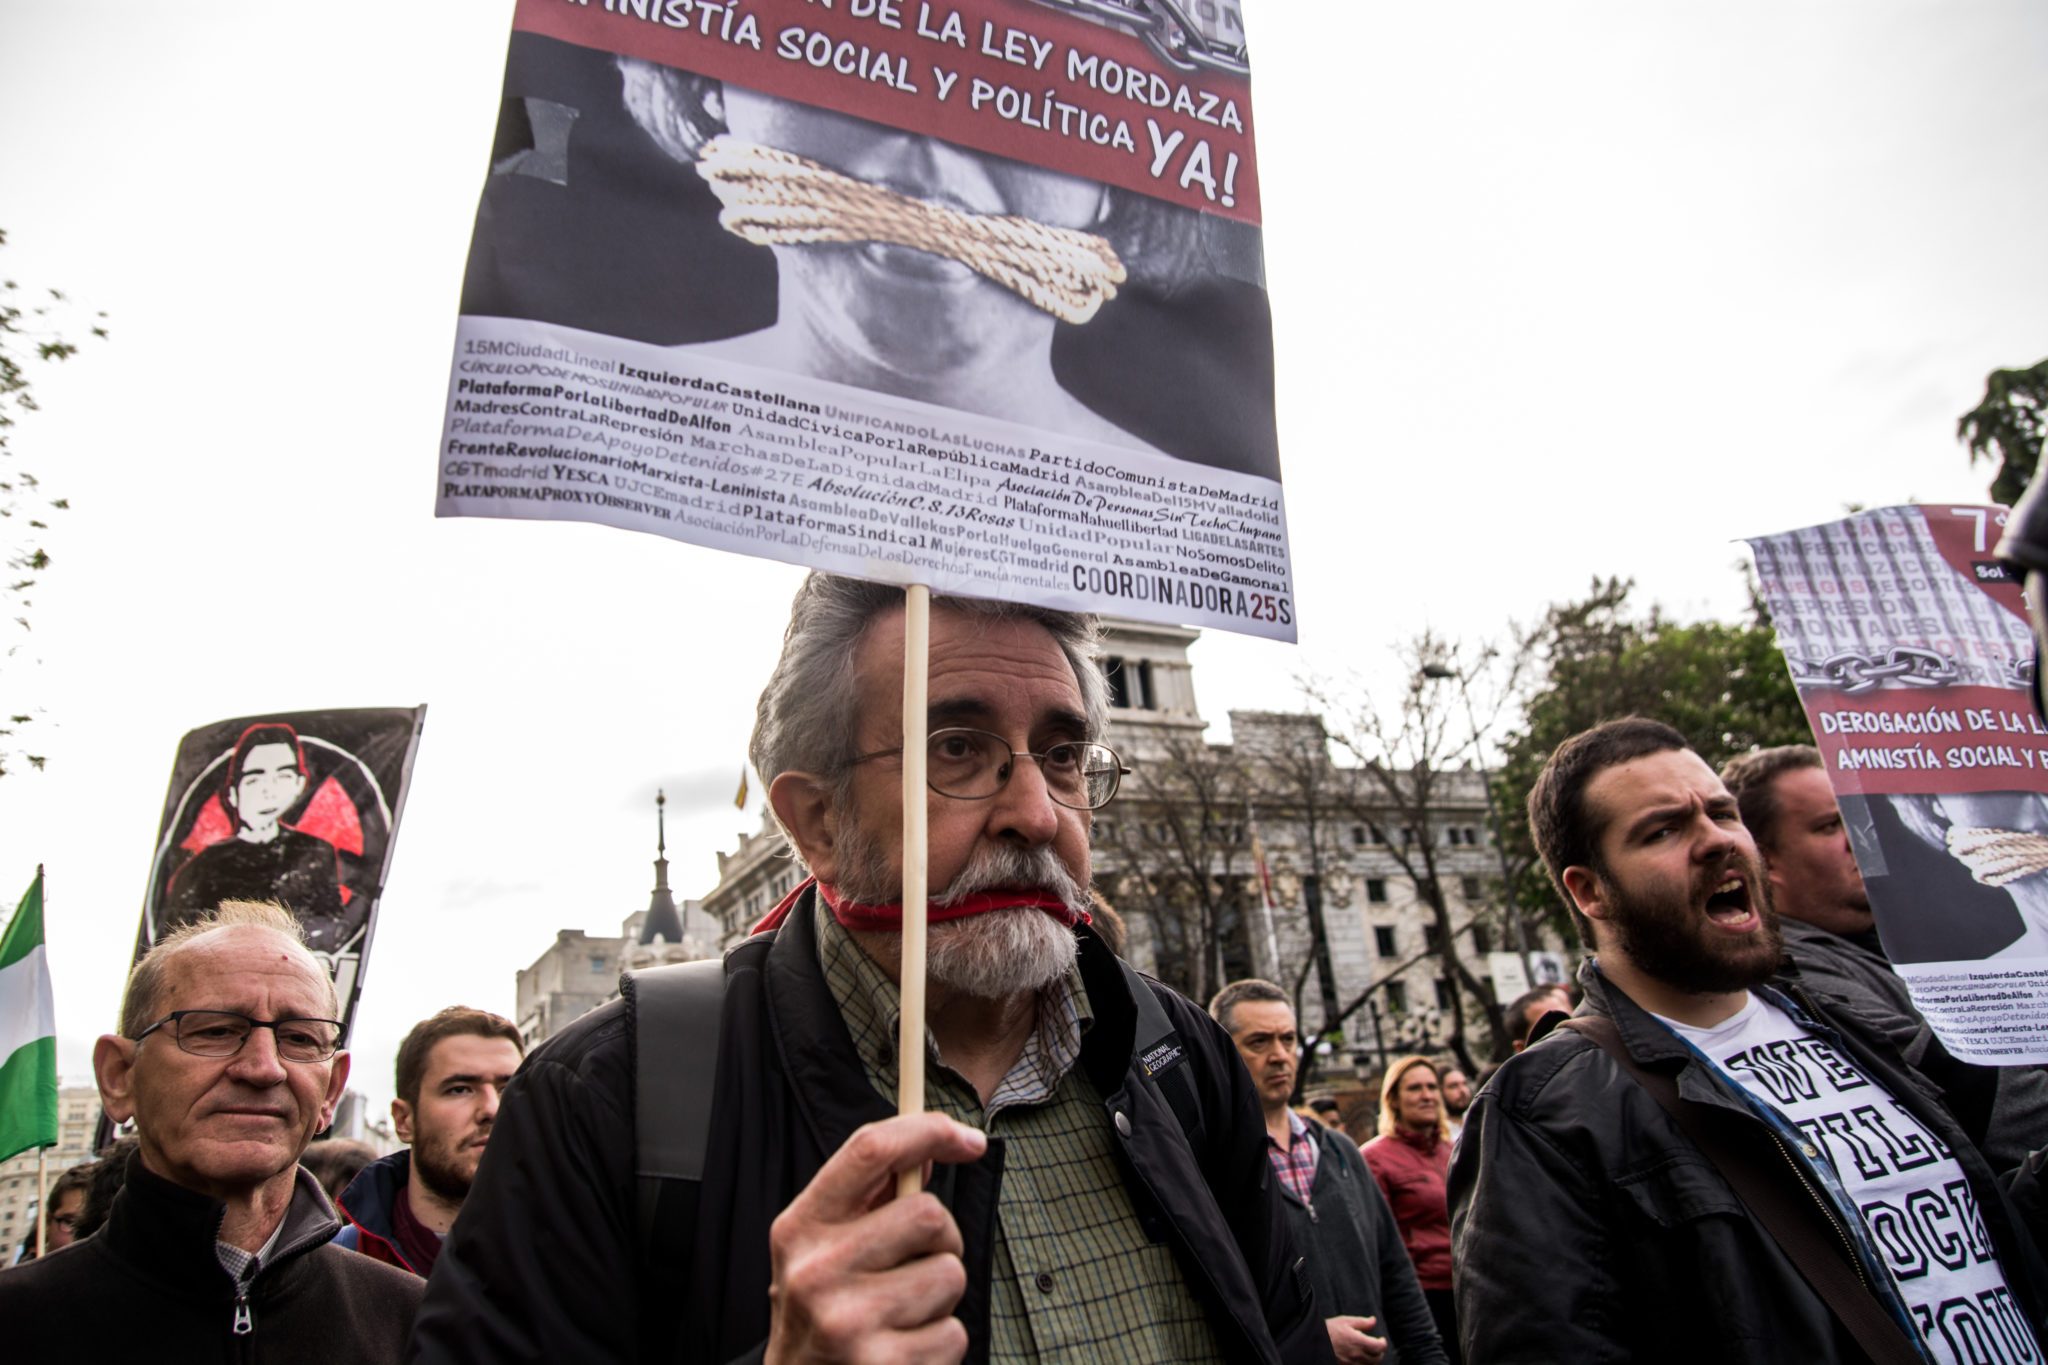 Spain: Tweet…If you dare: How counter-terrorism laws restrict freedom of expression in Spain